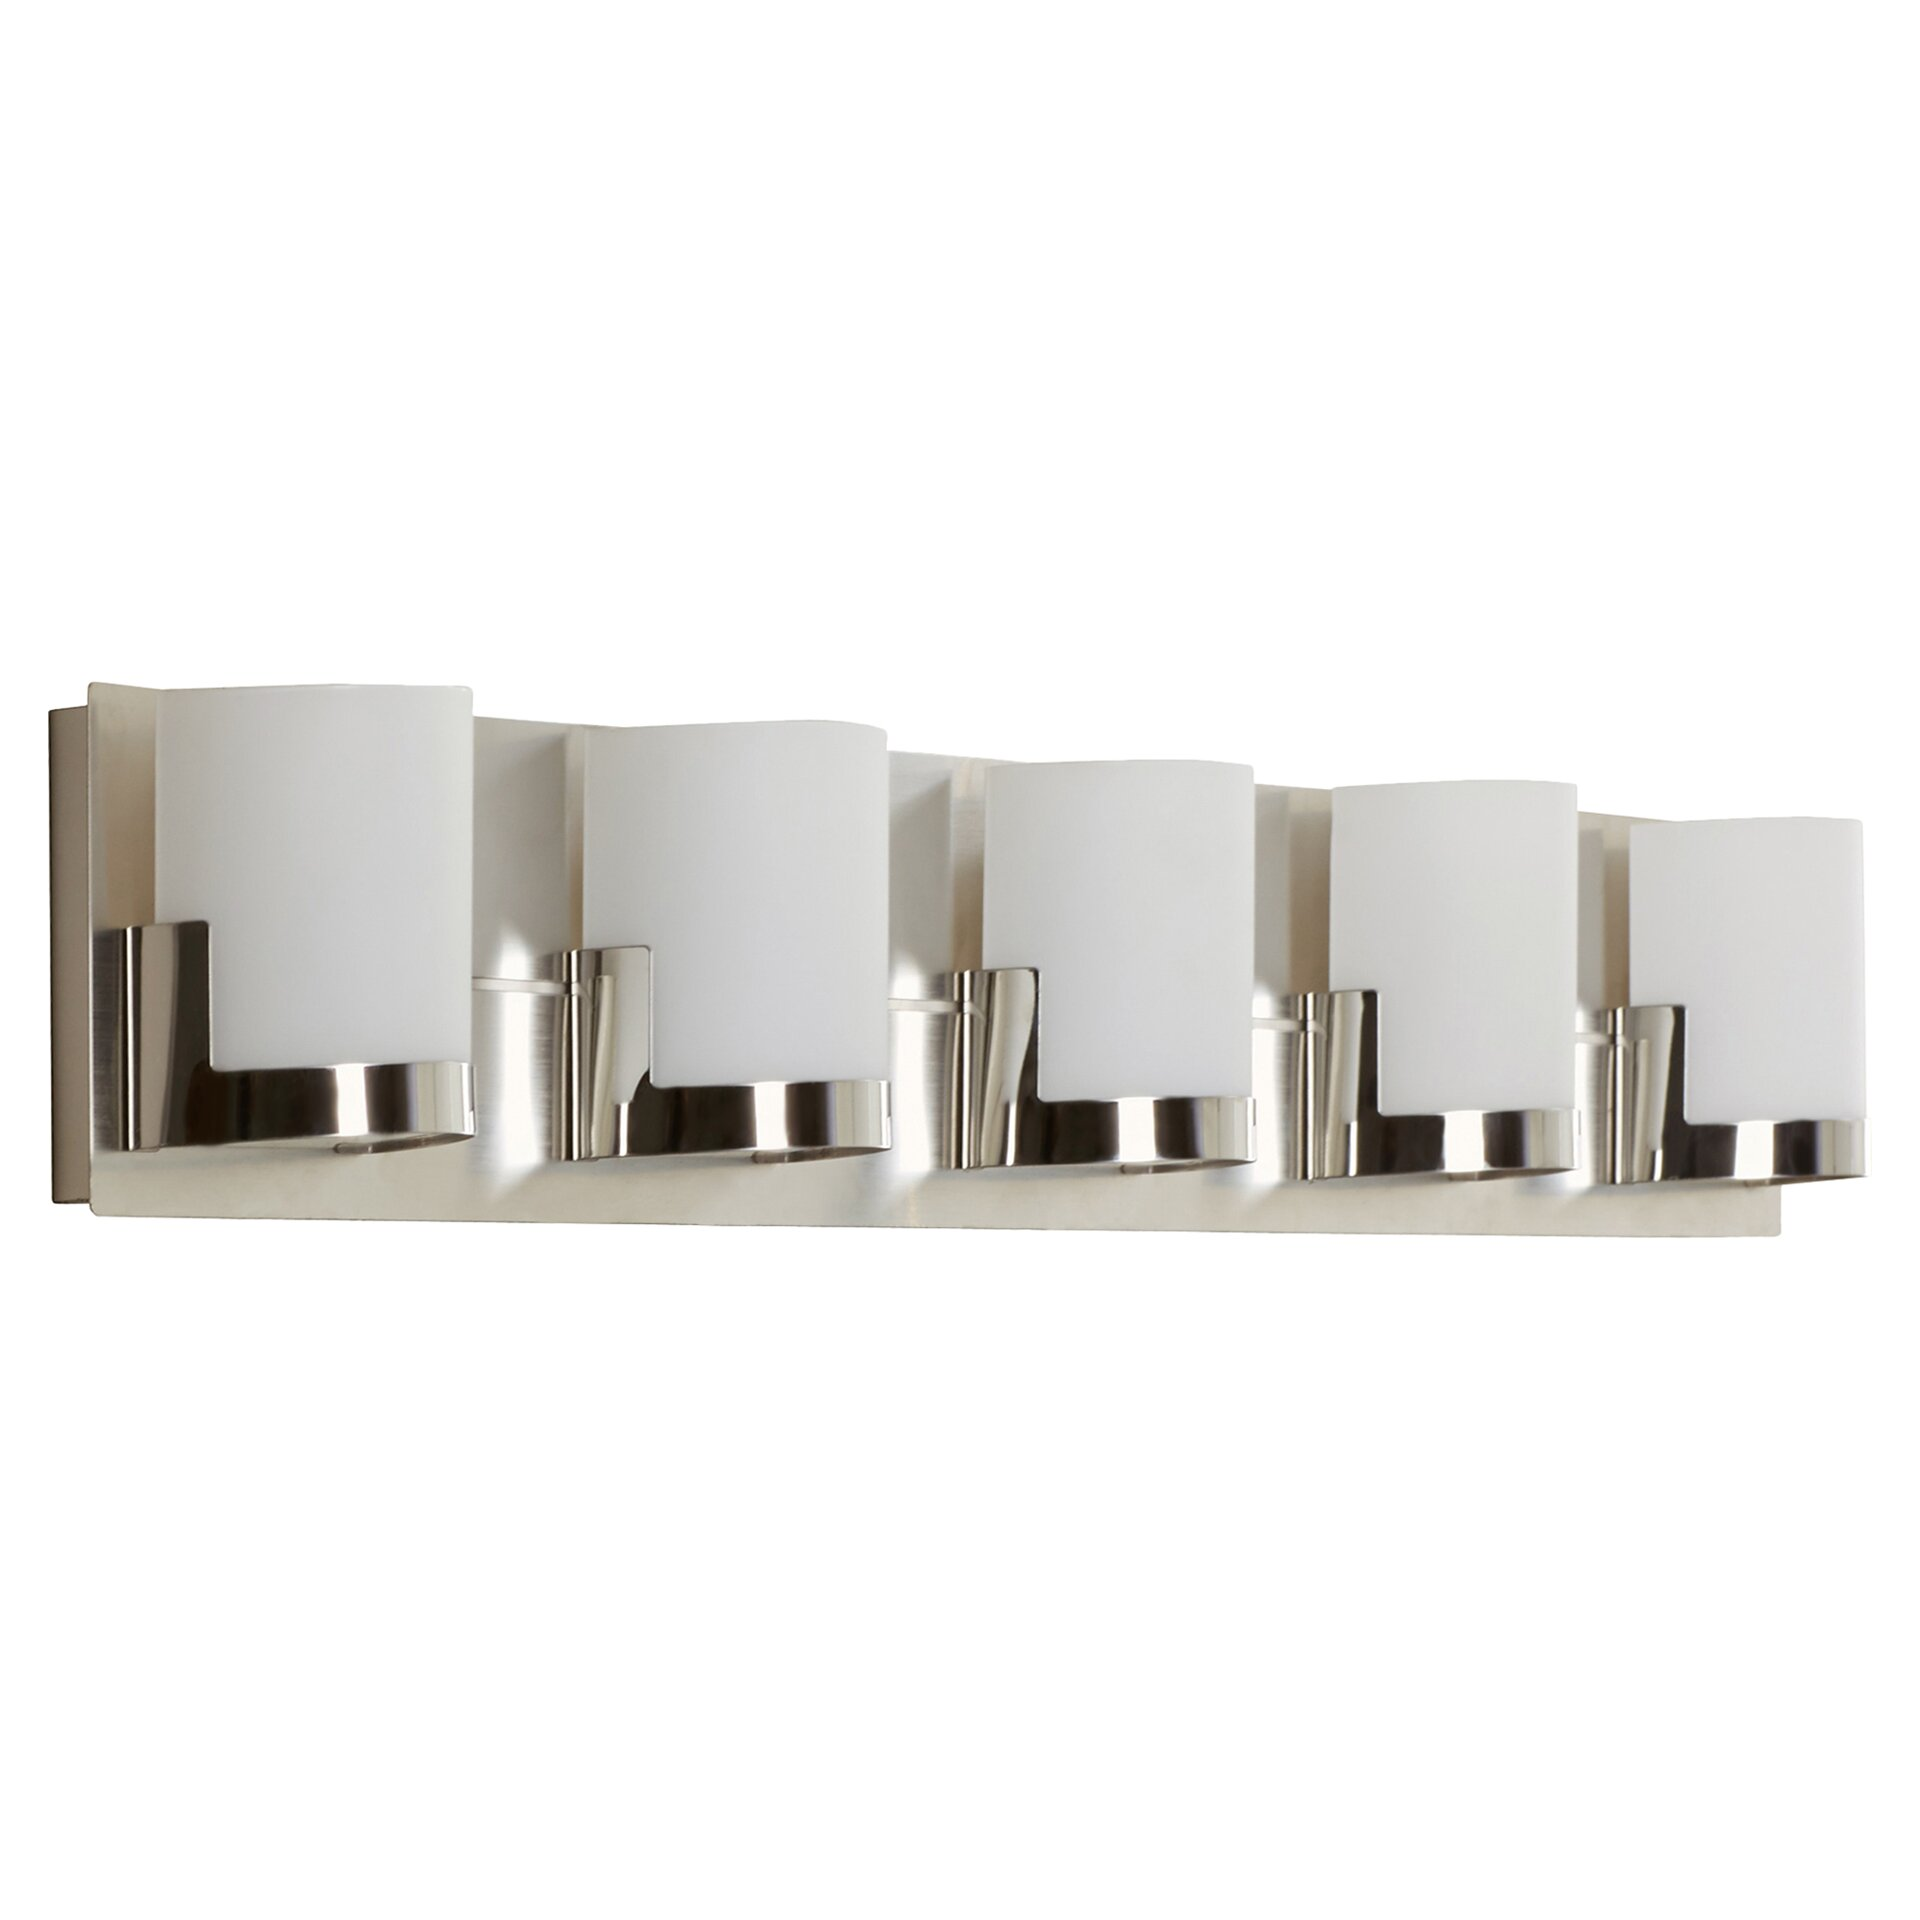 5 Light Bathroom Vanity Light: Congresbury 5 Light Bath Vanity Light